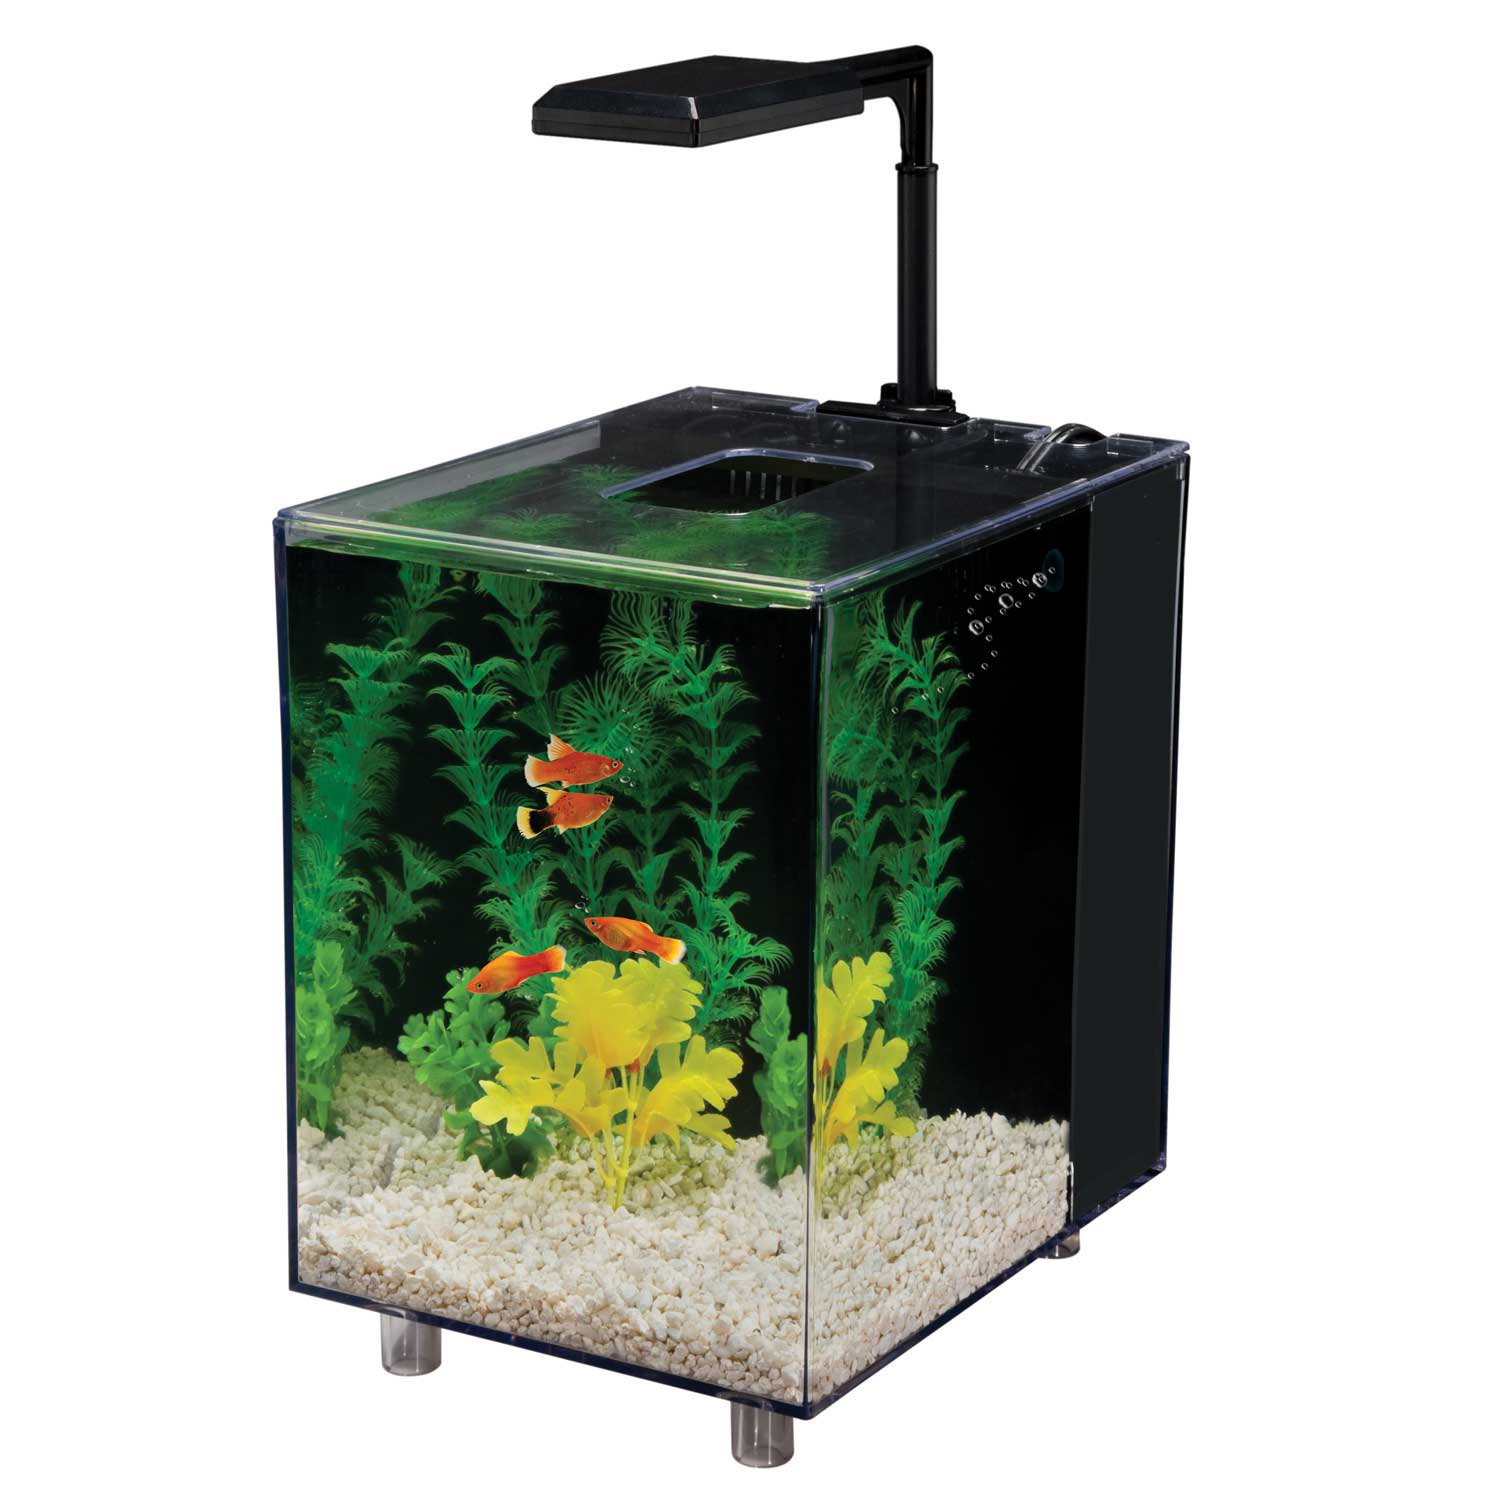 Penn Plax 2 Gallon Prism Nano Aquarium Kit Black